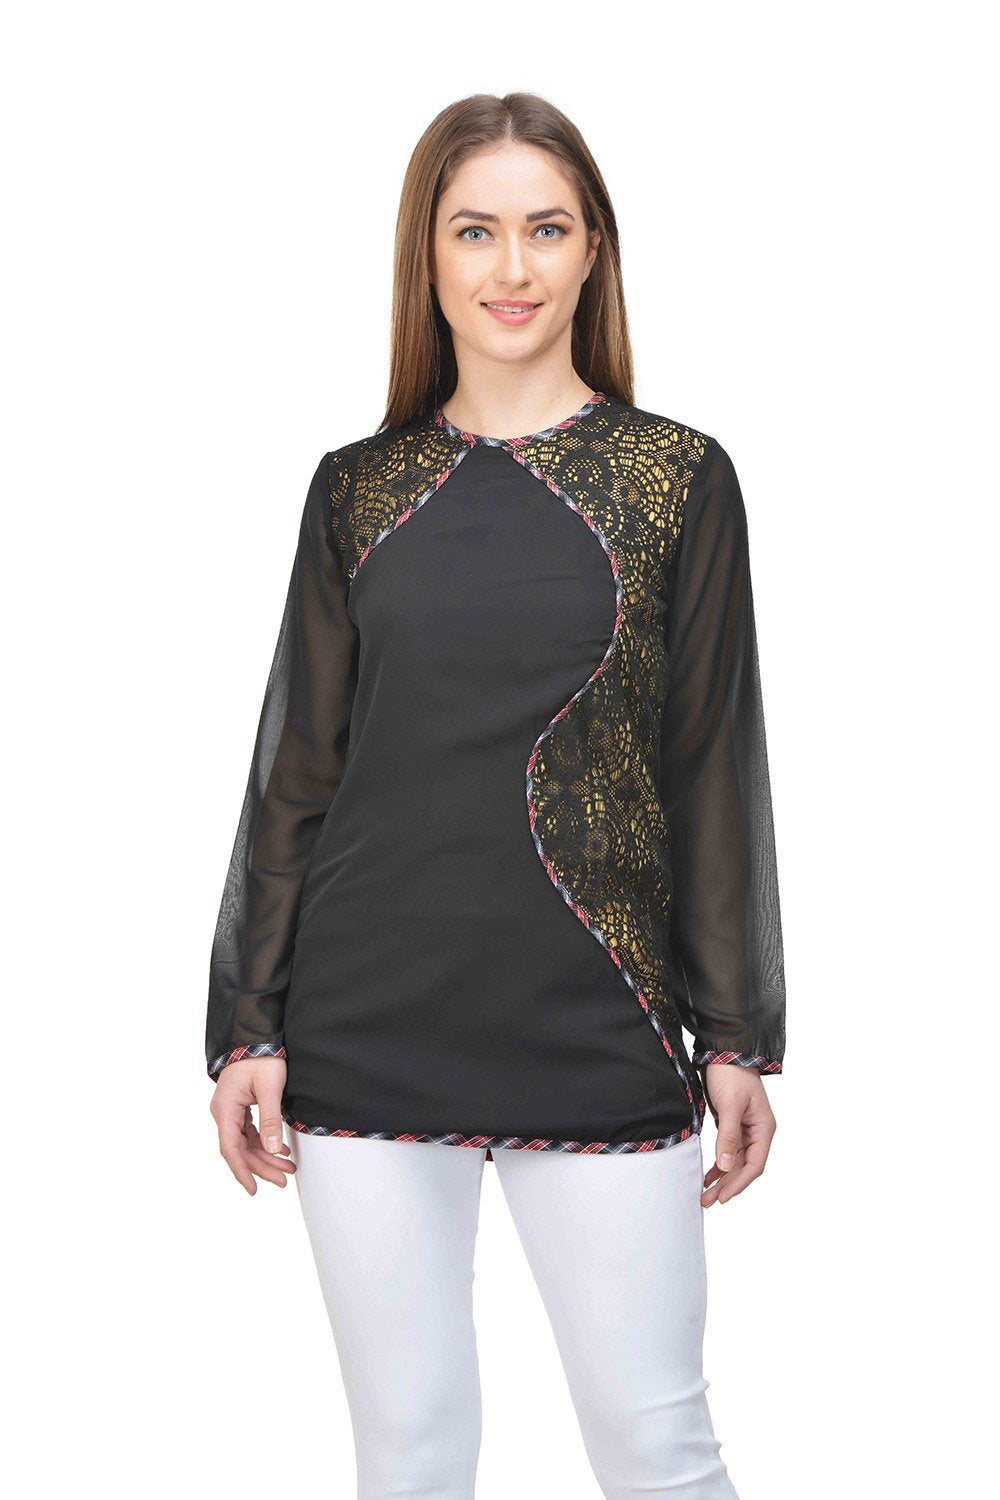 Castle Black Net Georgette Top - Castle Lifestyle